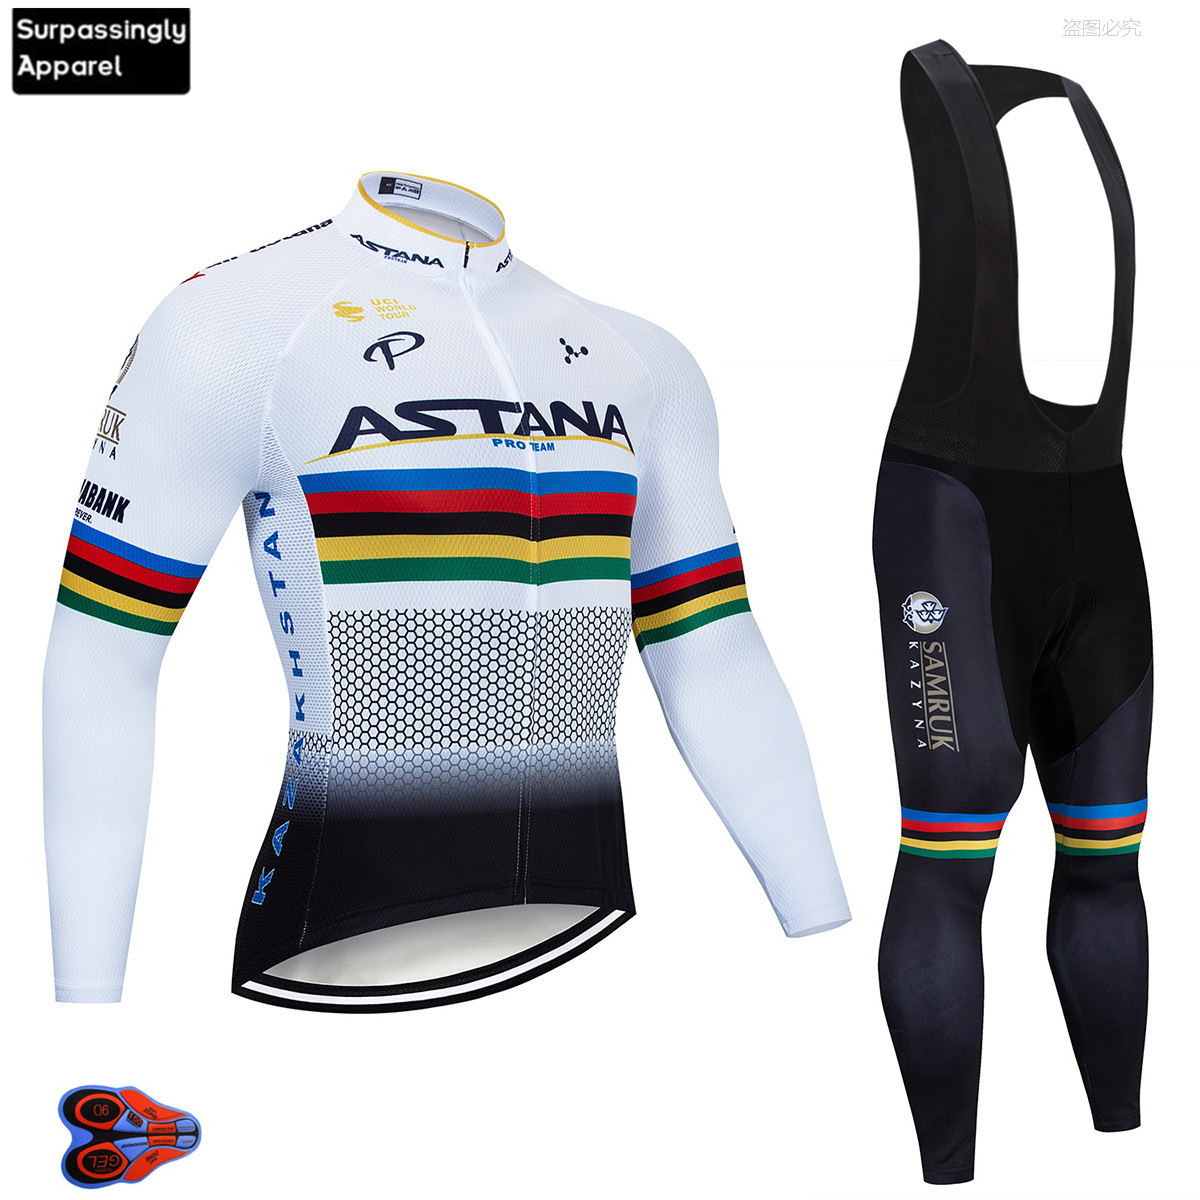 2019 ASTANA Men's Cycling Jersey Long Sleeve Set MTB Bike Clothing Maillot Ropa Ciclismo Hombre Bicycle Wear 9D GEL Bib pants